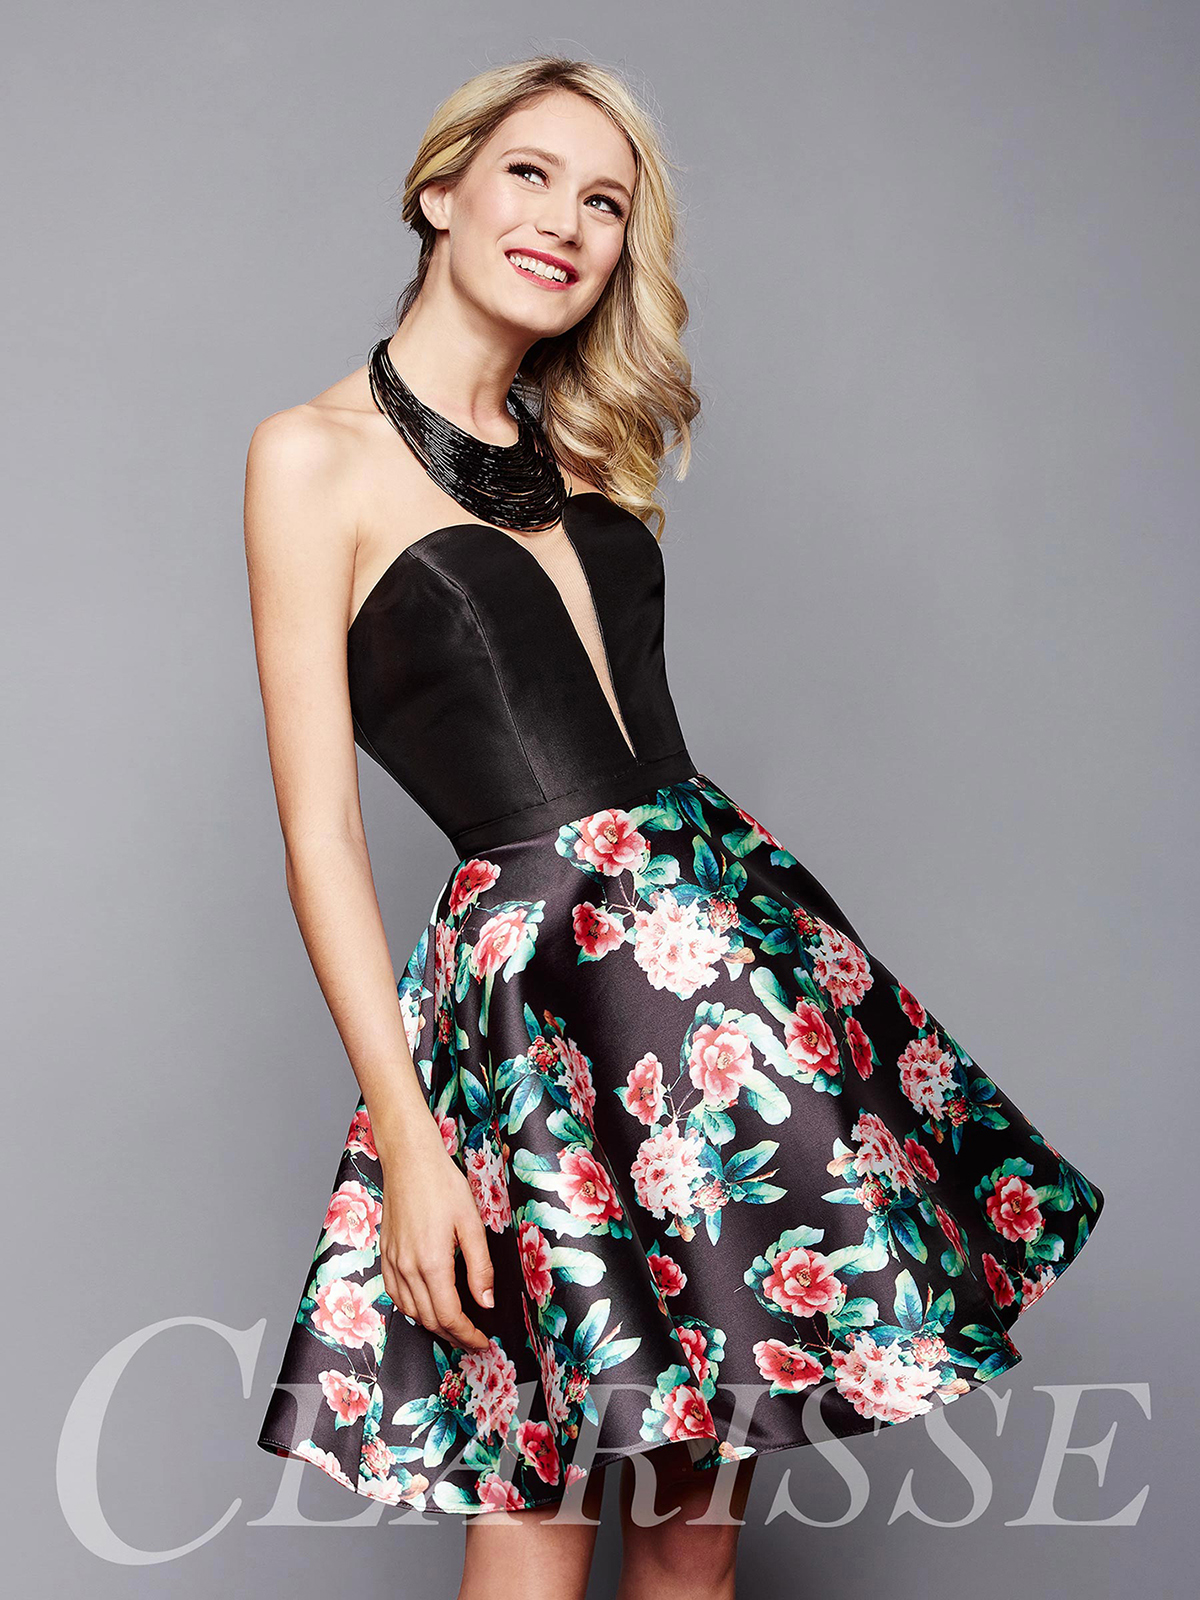 Clarisse Homecoming Dress 3302 | Promgirl.net